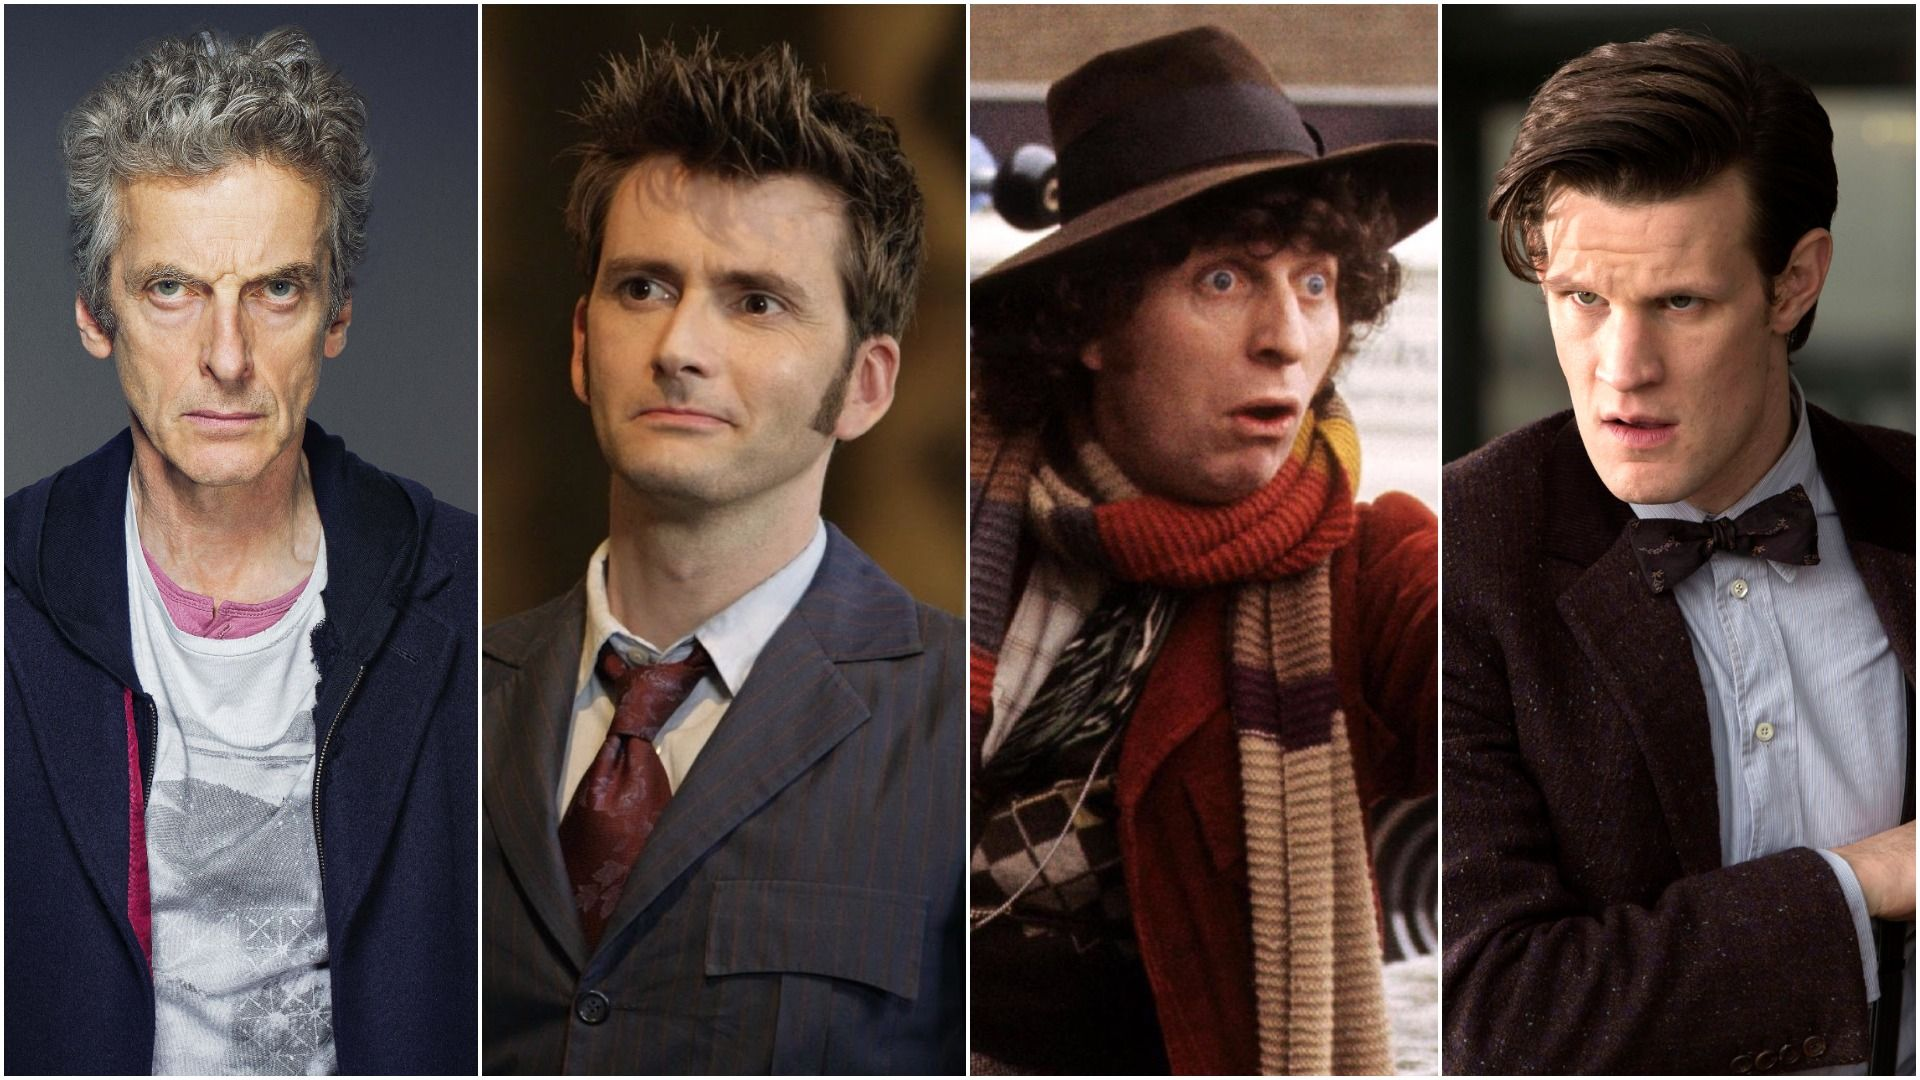 Doctor Who Ranking All 13 Doctors From Peter Capaldi To William